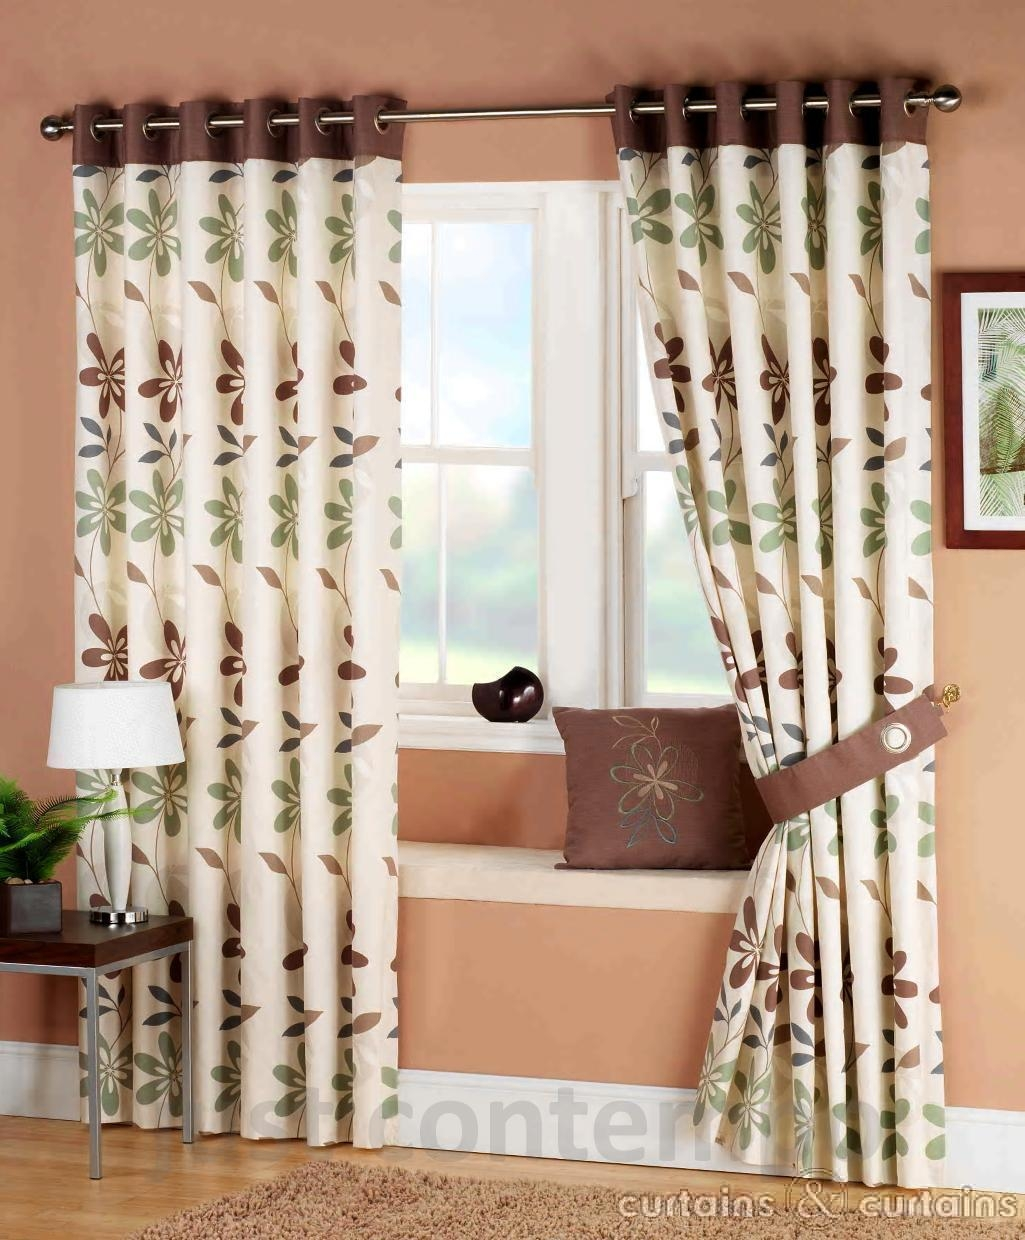 Ariel Green Brown Ready Made Eyelet Curtain Curtains Uk With Regard To Long Eyelet Curtains (Image 2 of 15)